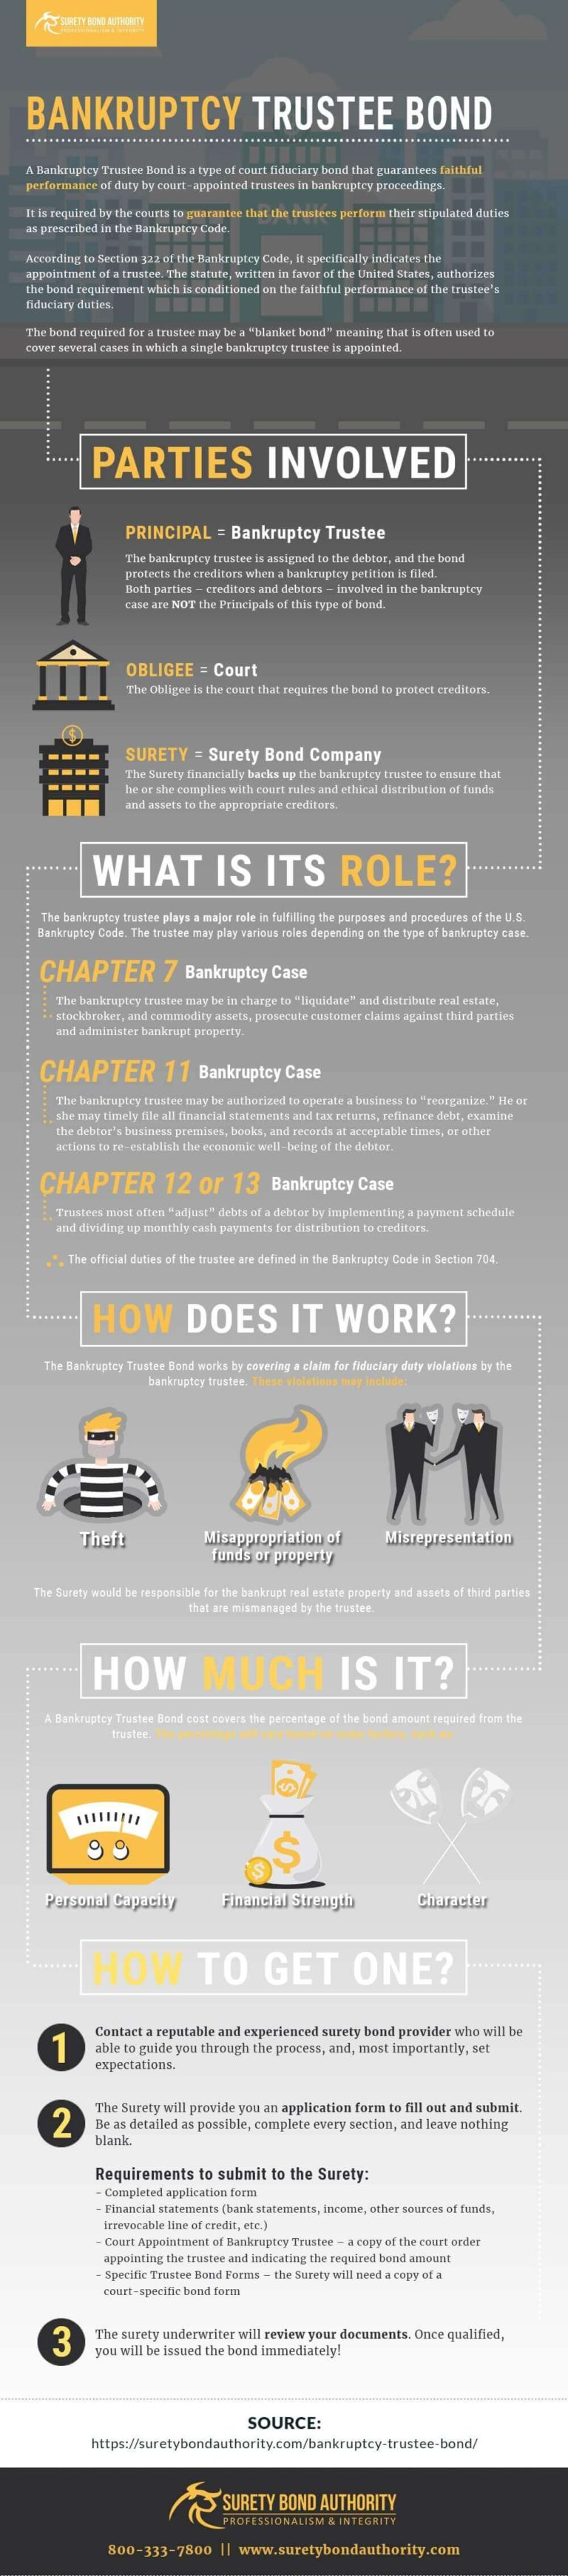 Bankruptcy Trustee Bond Infographic